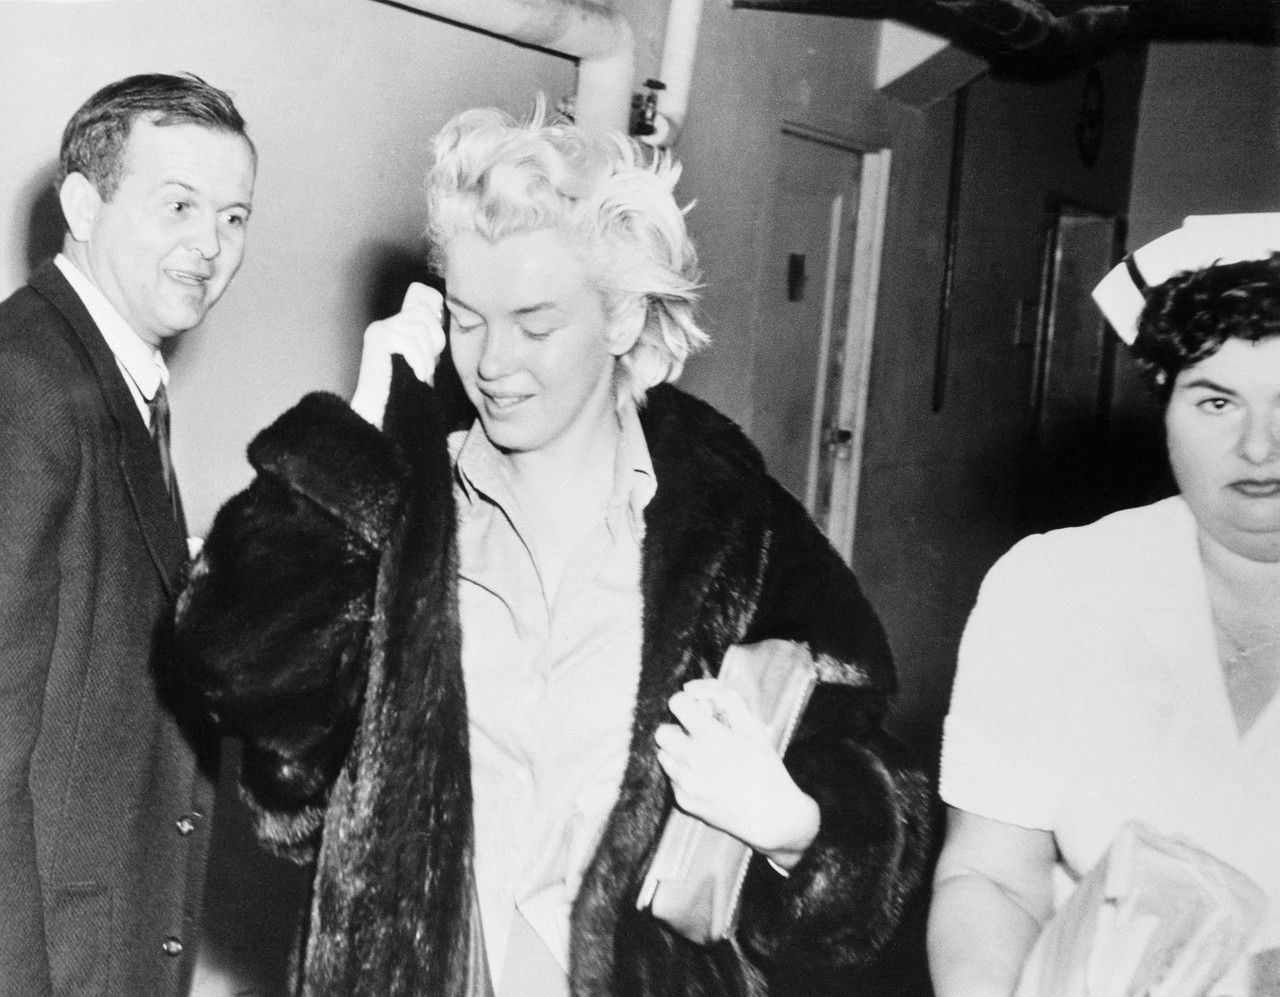 Marilyn Monroe at a psychiatric clinic